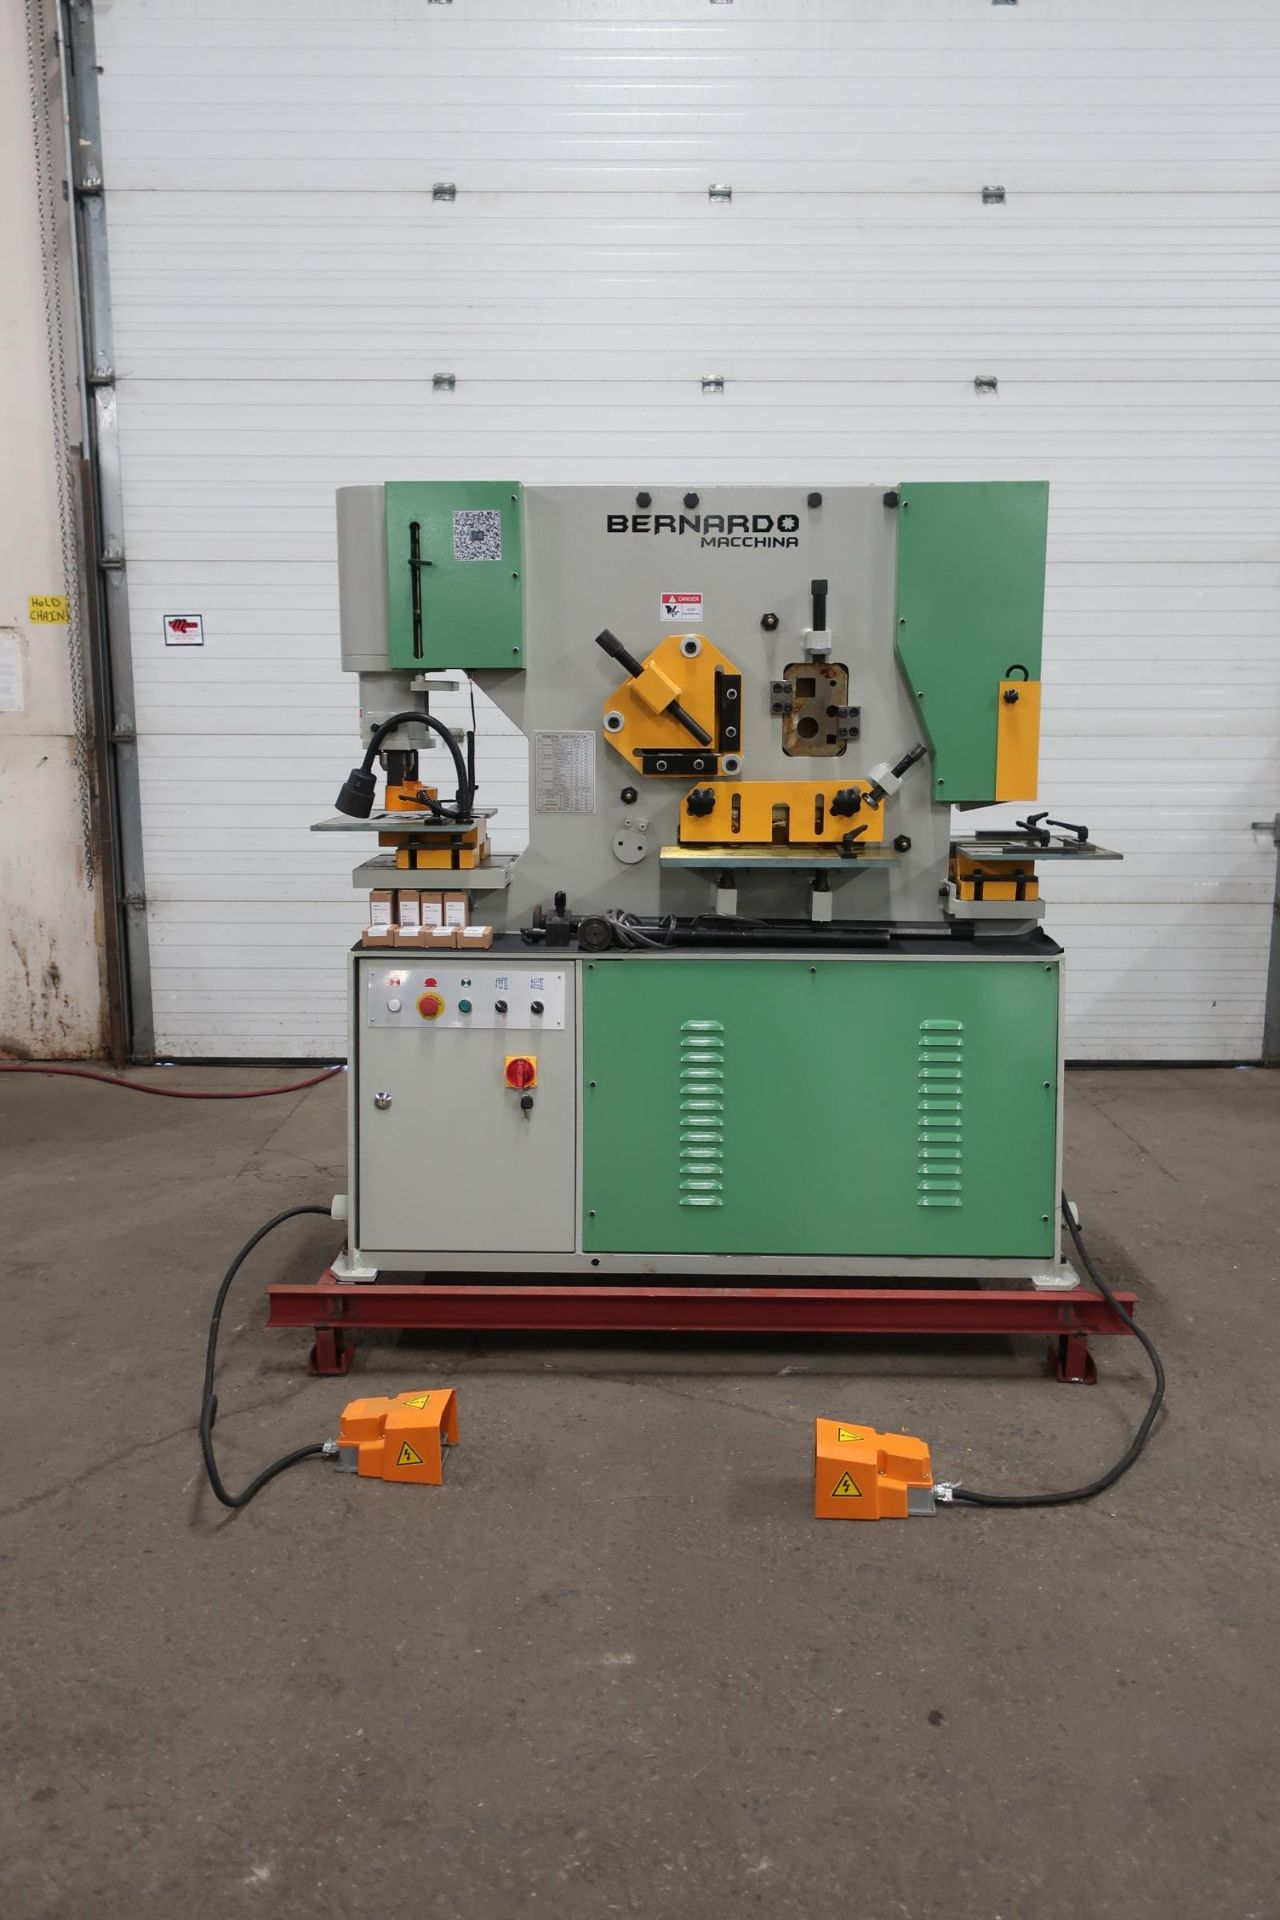 Bernardo Macchina 65 Ton Capacity Hydraulic Ironworker - complete with dies and punches - Dual